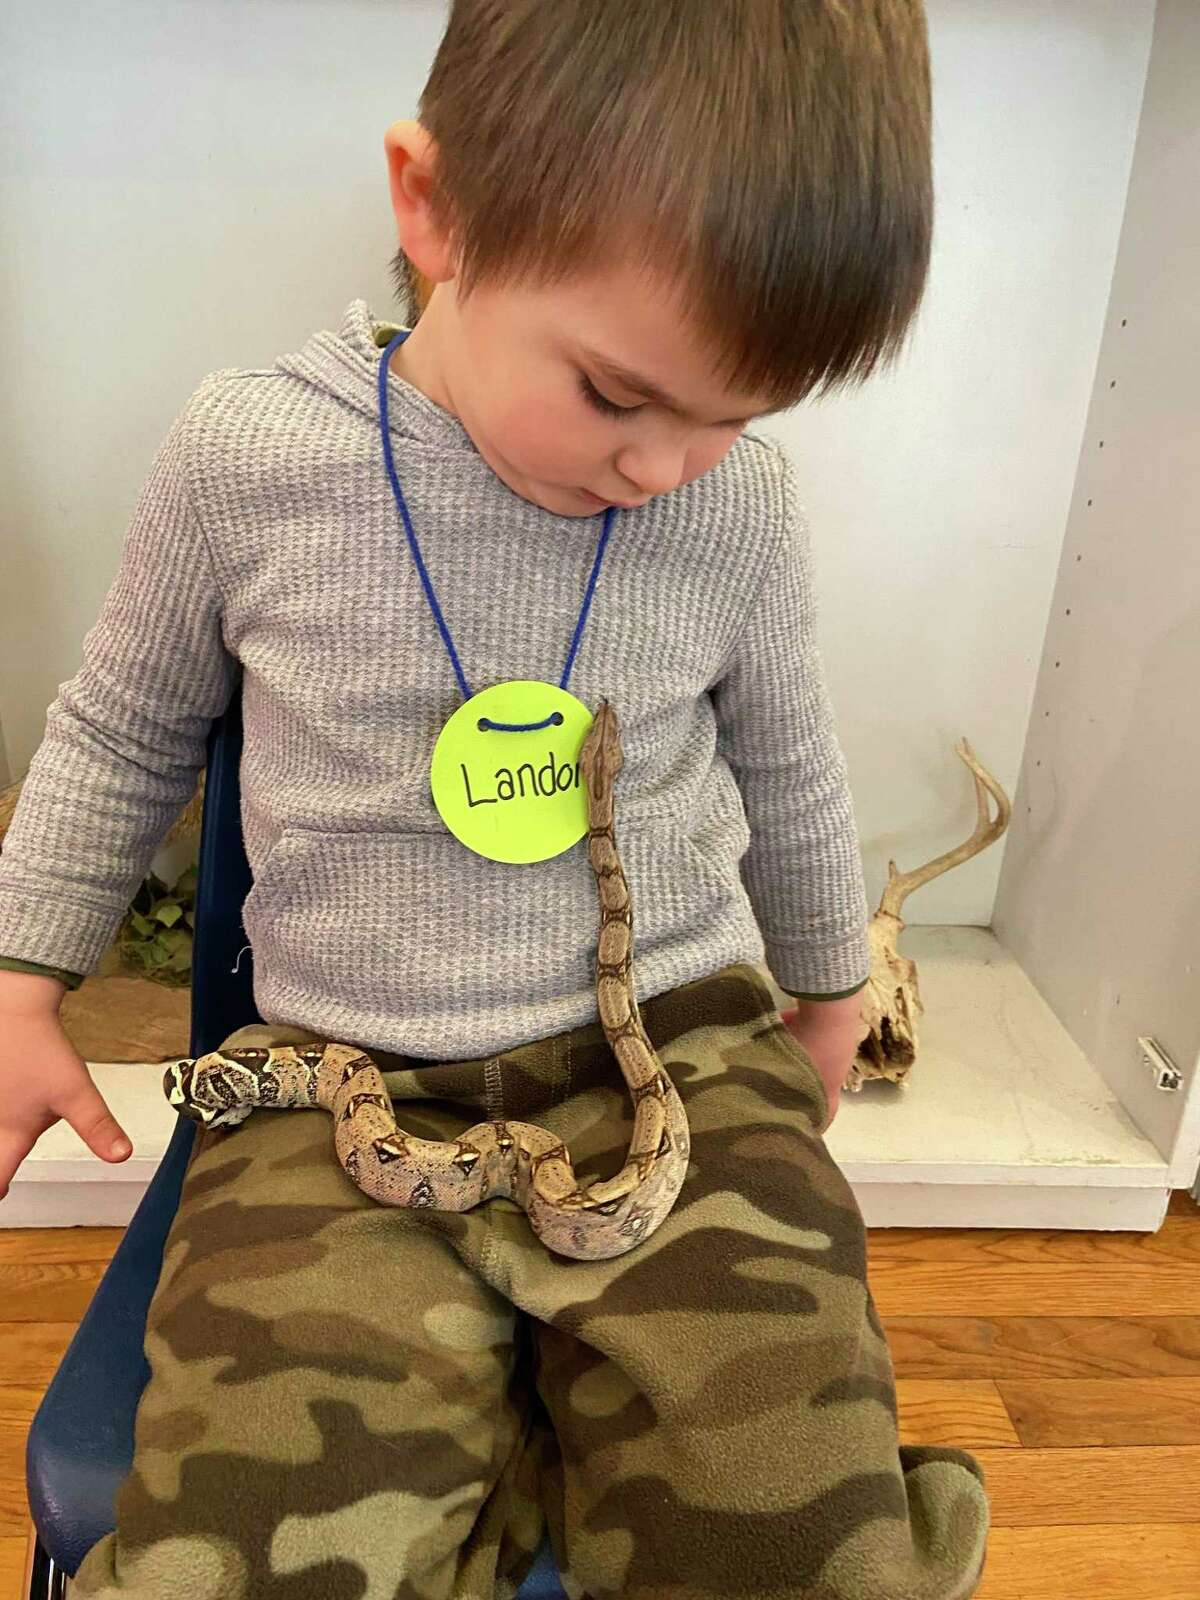 Landon Marchison, 3, from Ridgefield, watches as Indira, the new Colombian Red-Tailed Boa Constrictor, slithers on his lap at the Woodcock Nature Center on Feb. 17.